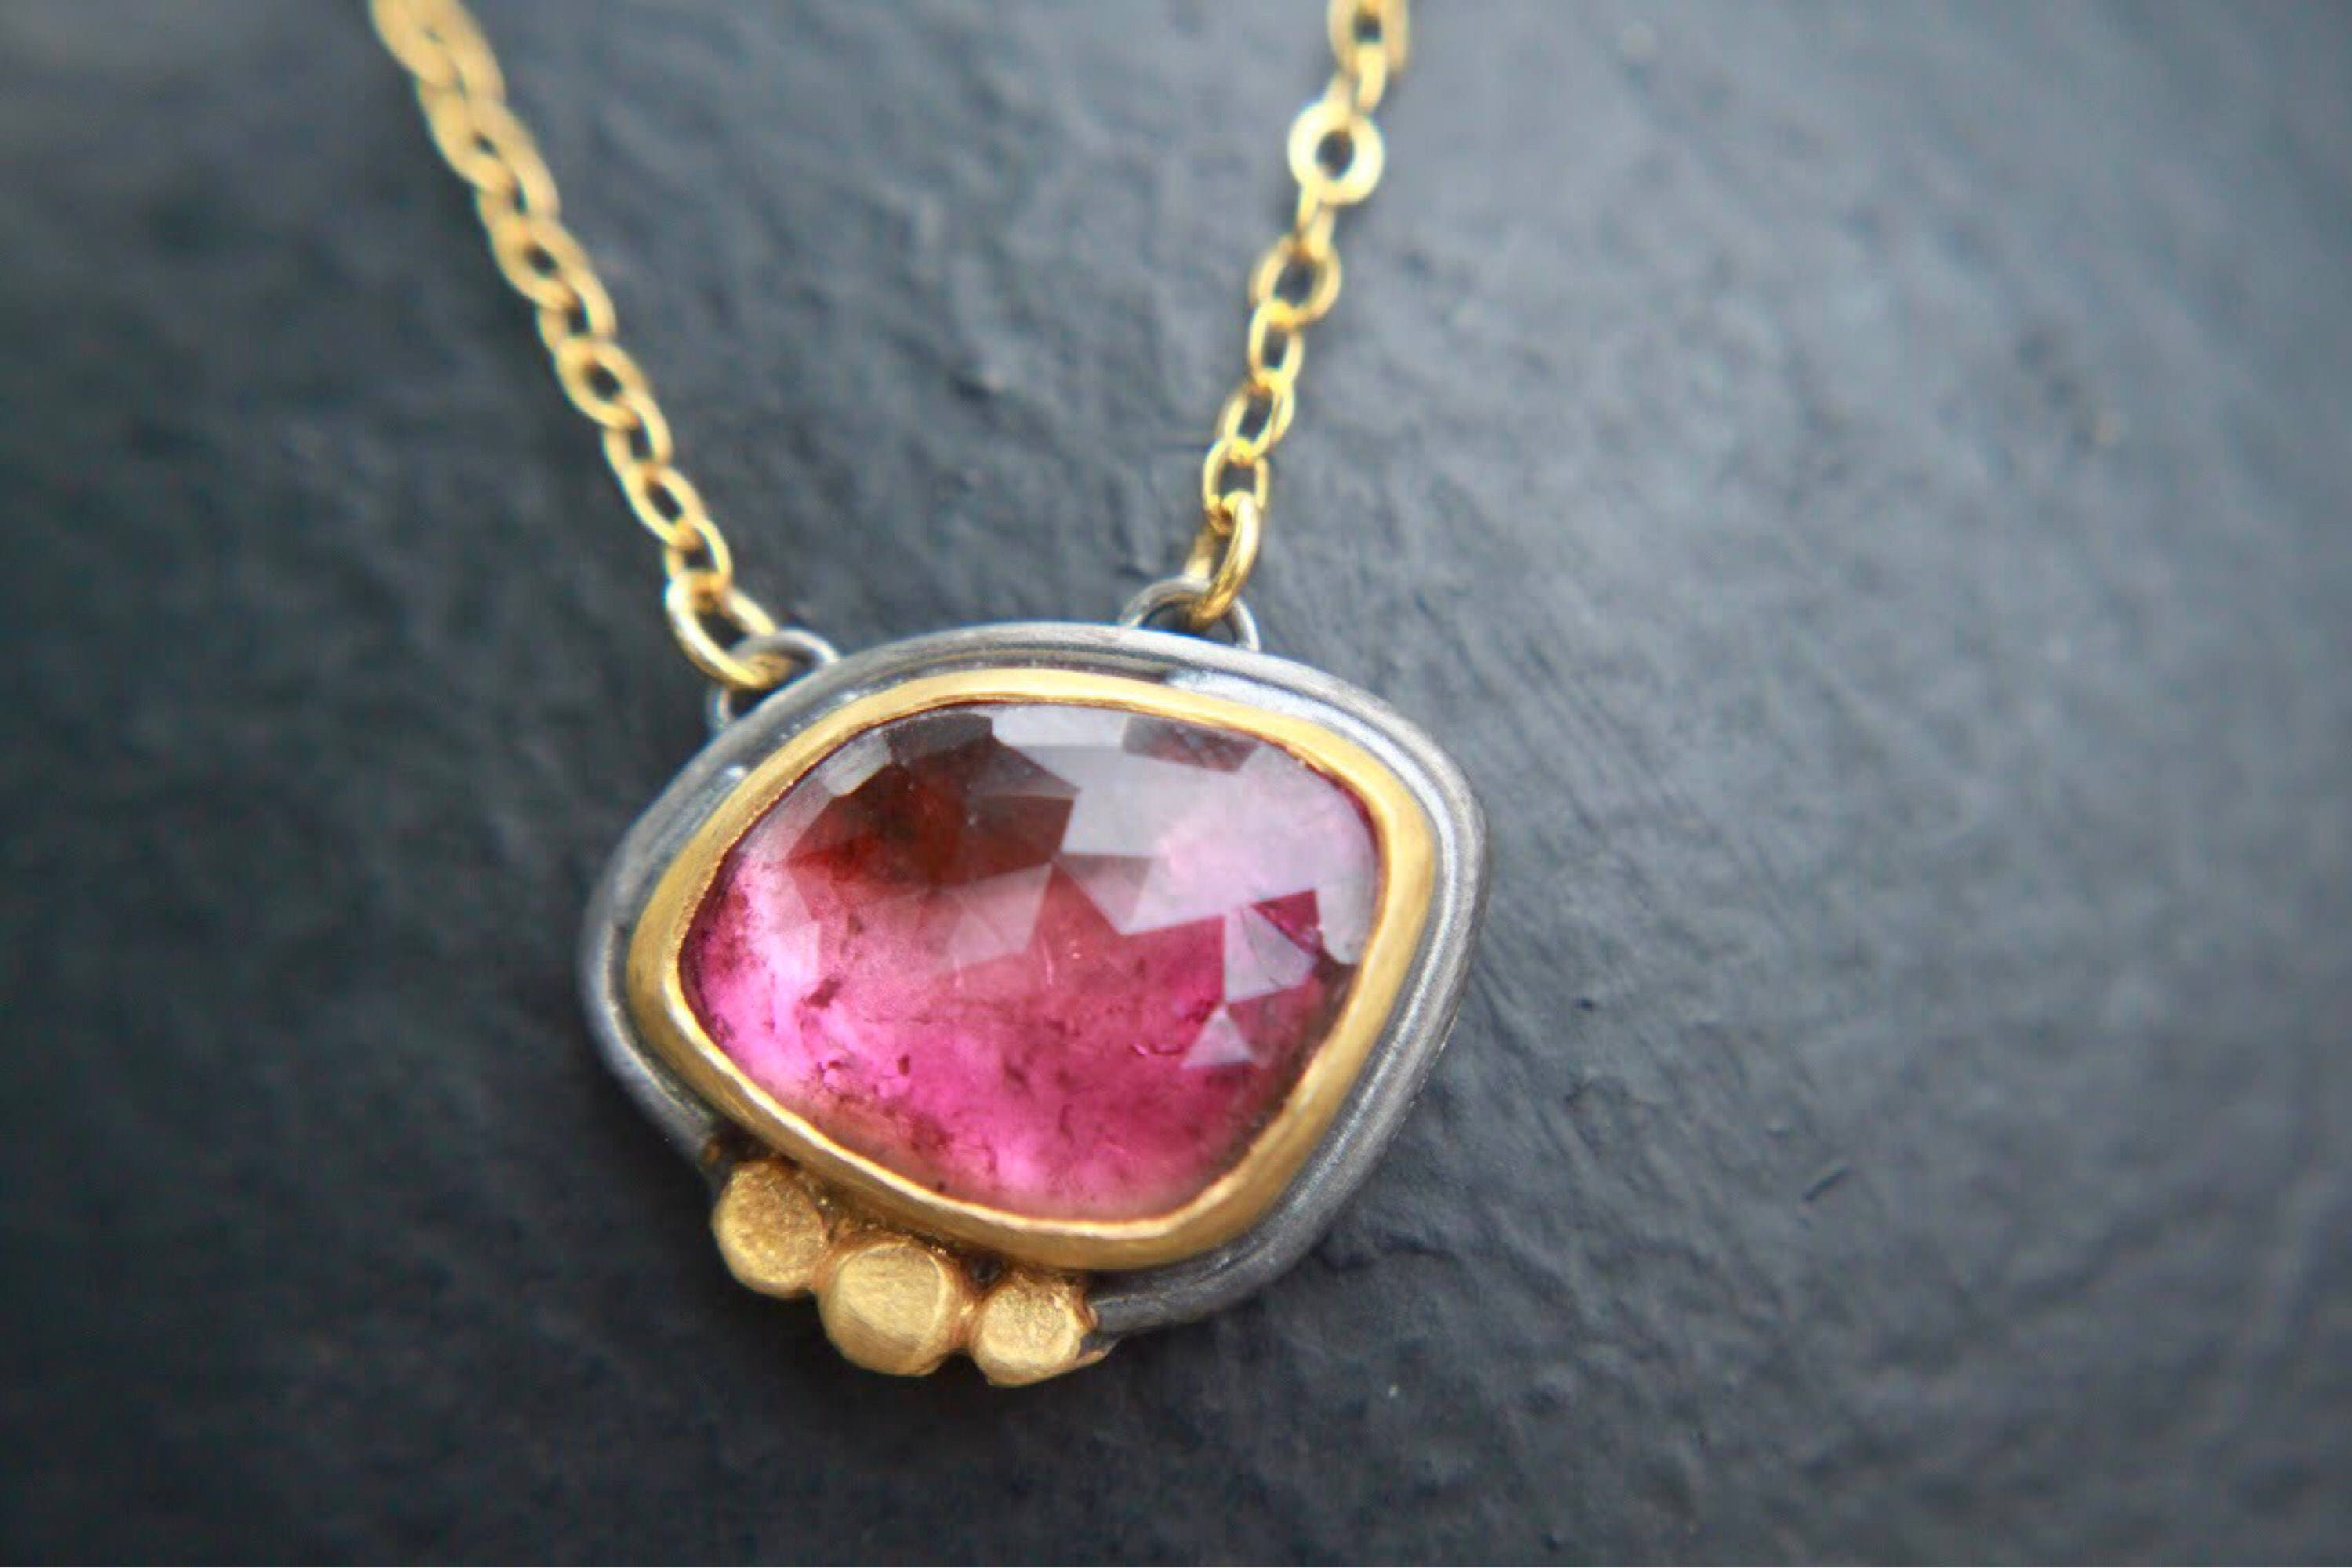 necklace gemstone pendant luxury bib statement watermelon tourmaline pink pin